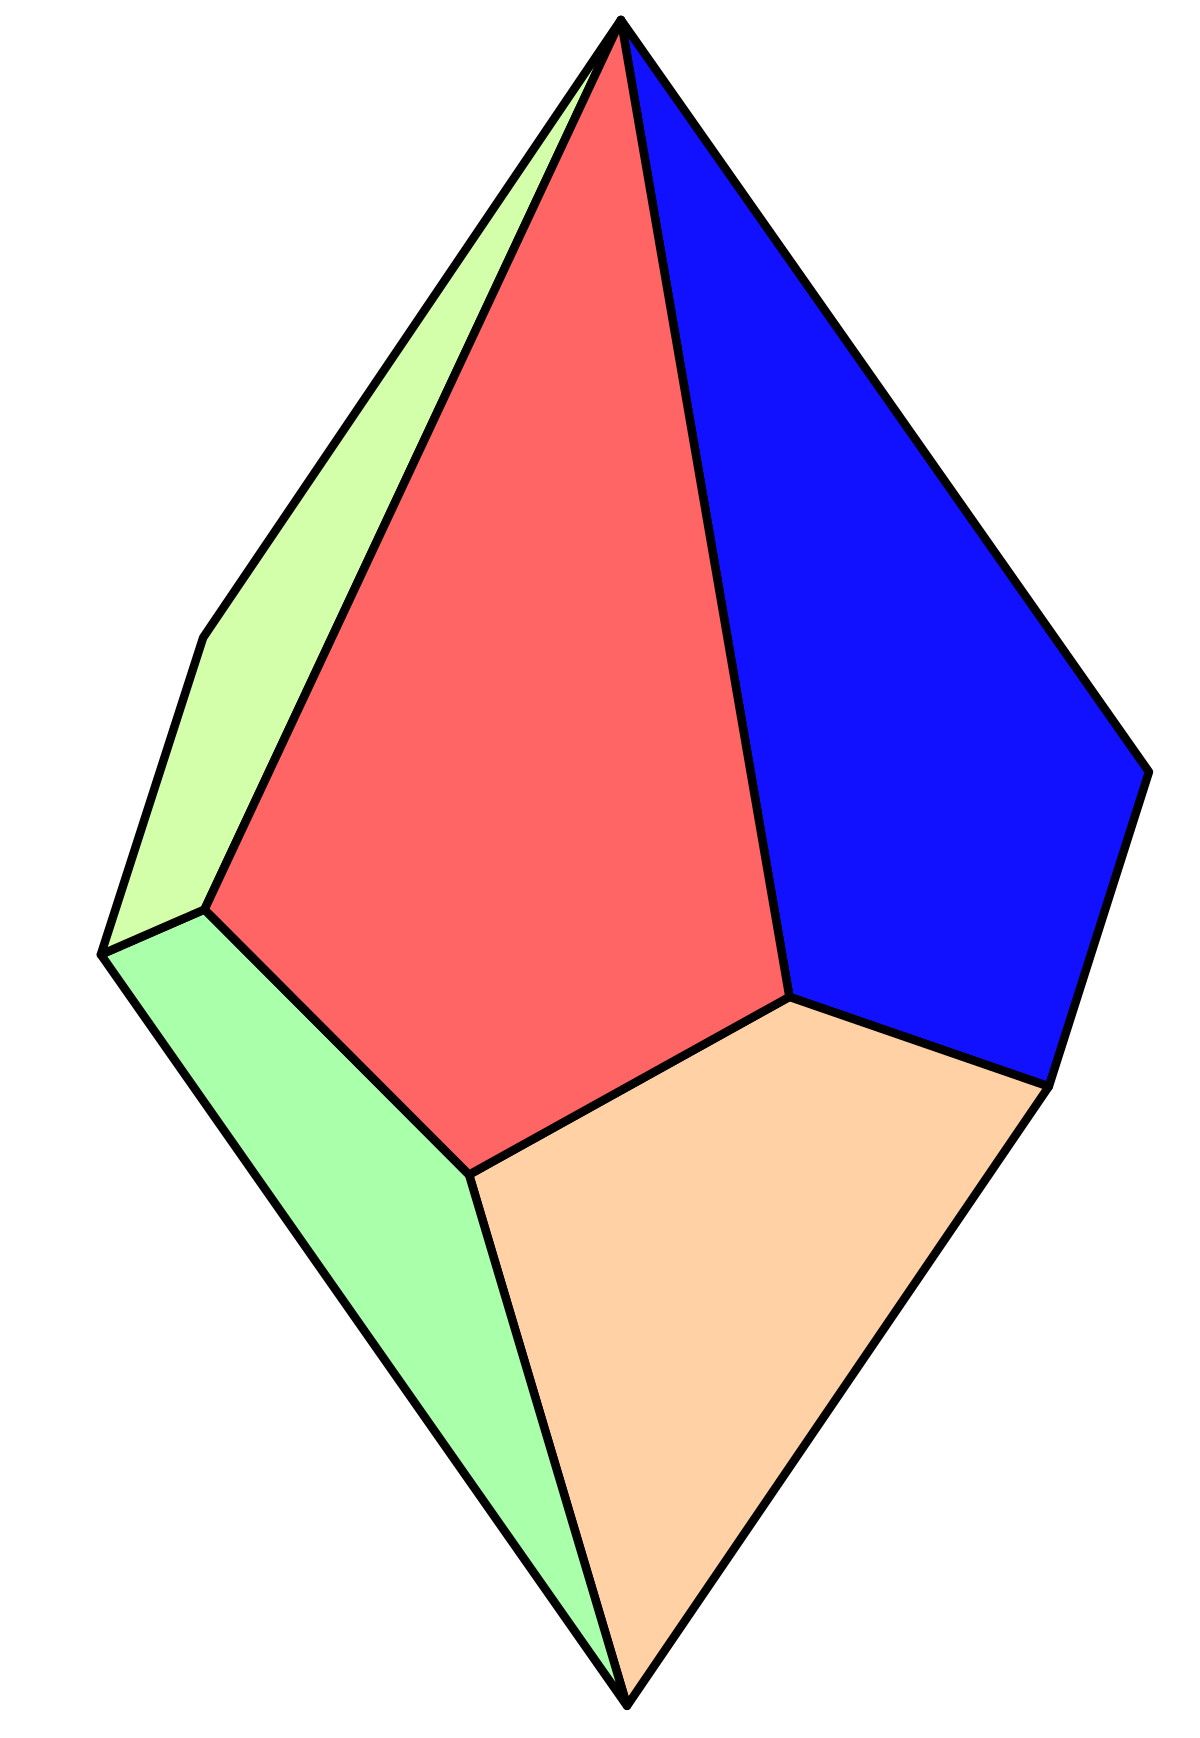 Trapezohedron wiktionary . Clipart shapes elegant